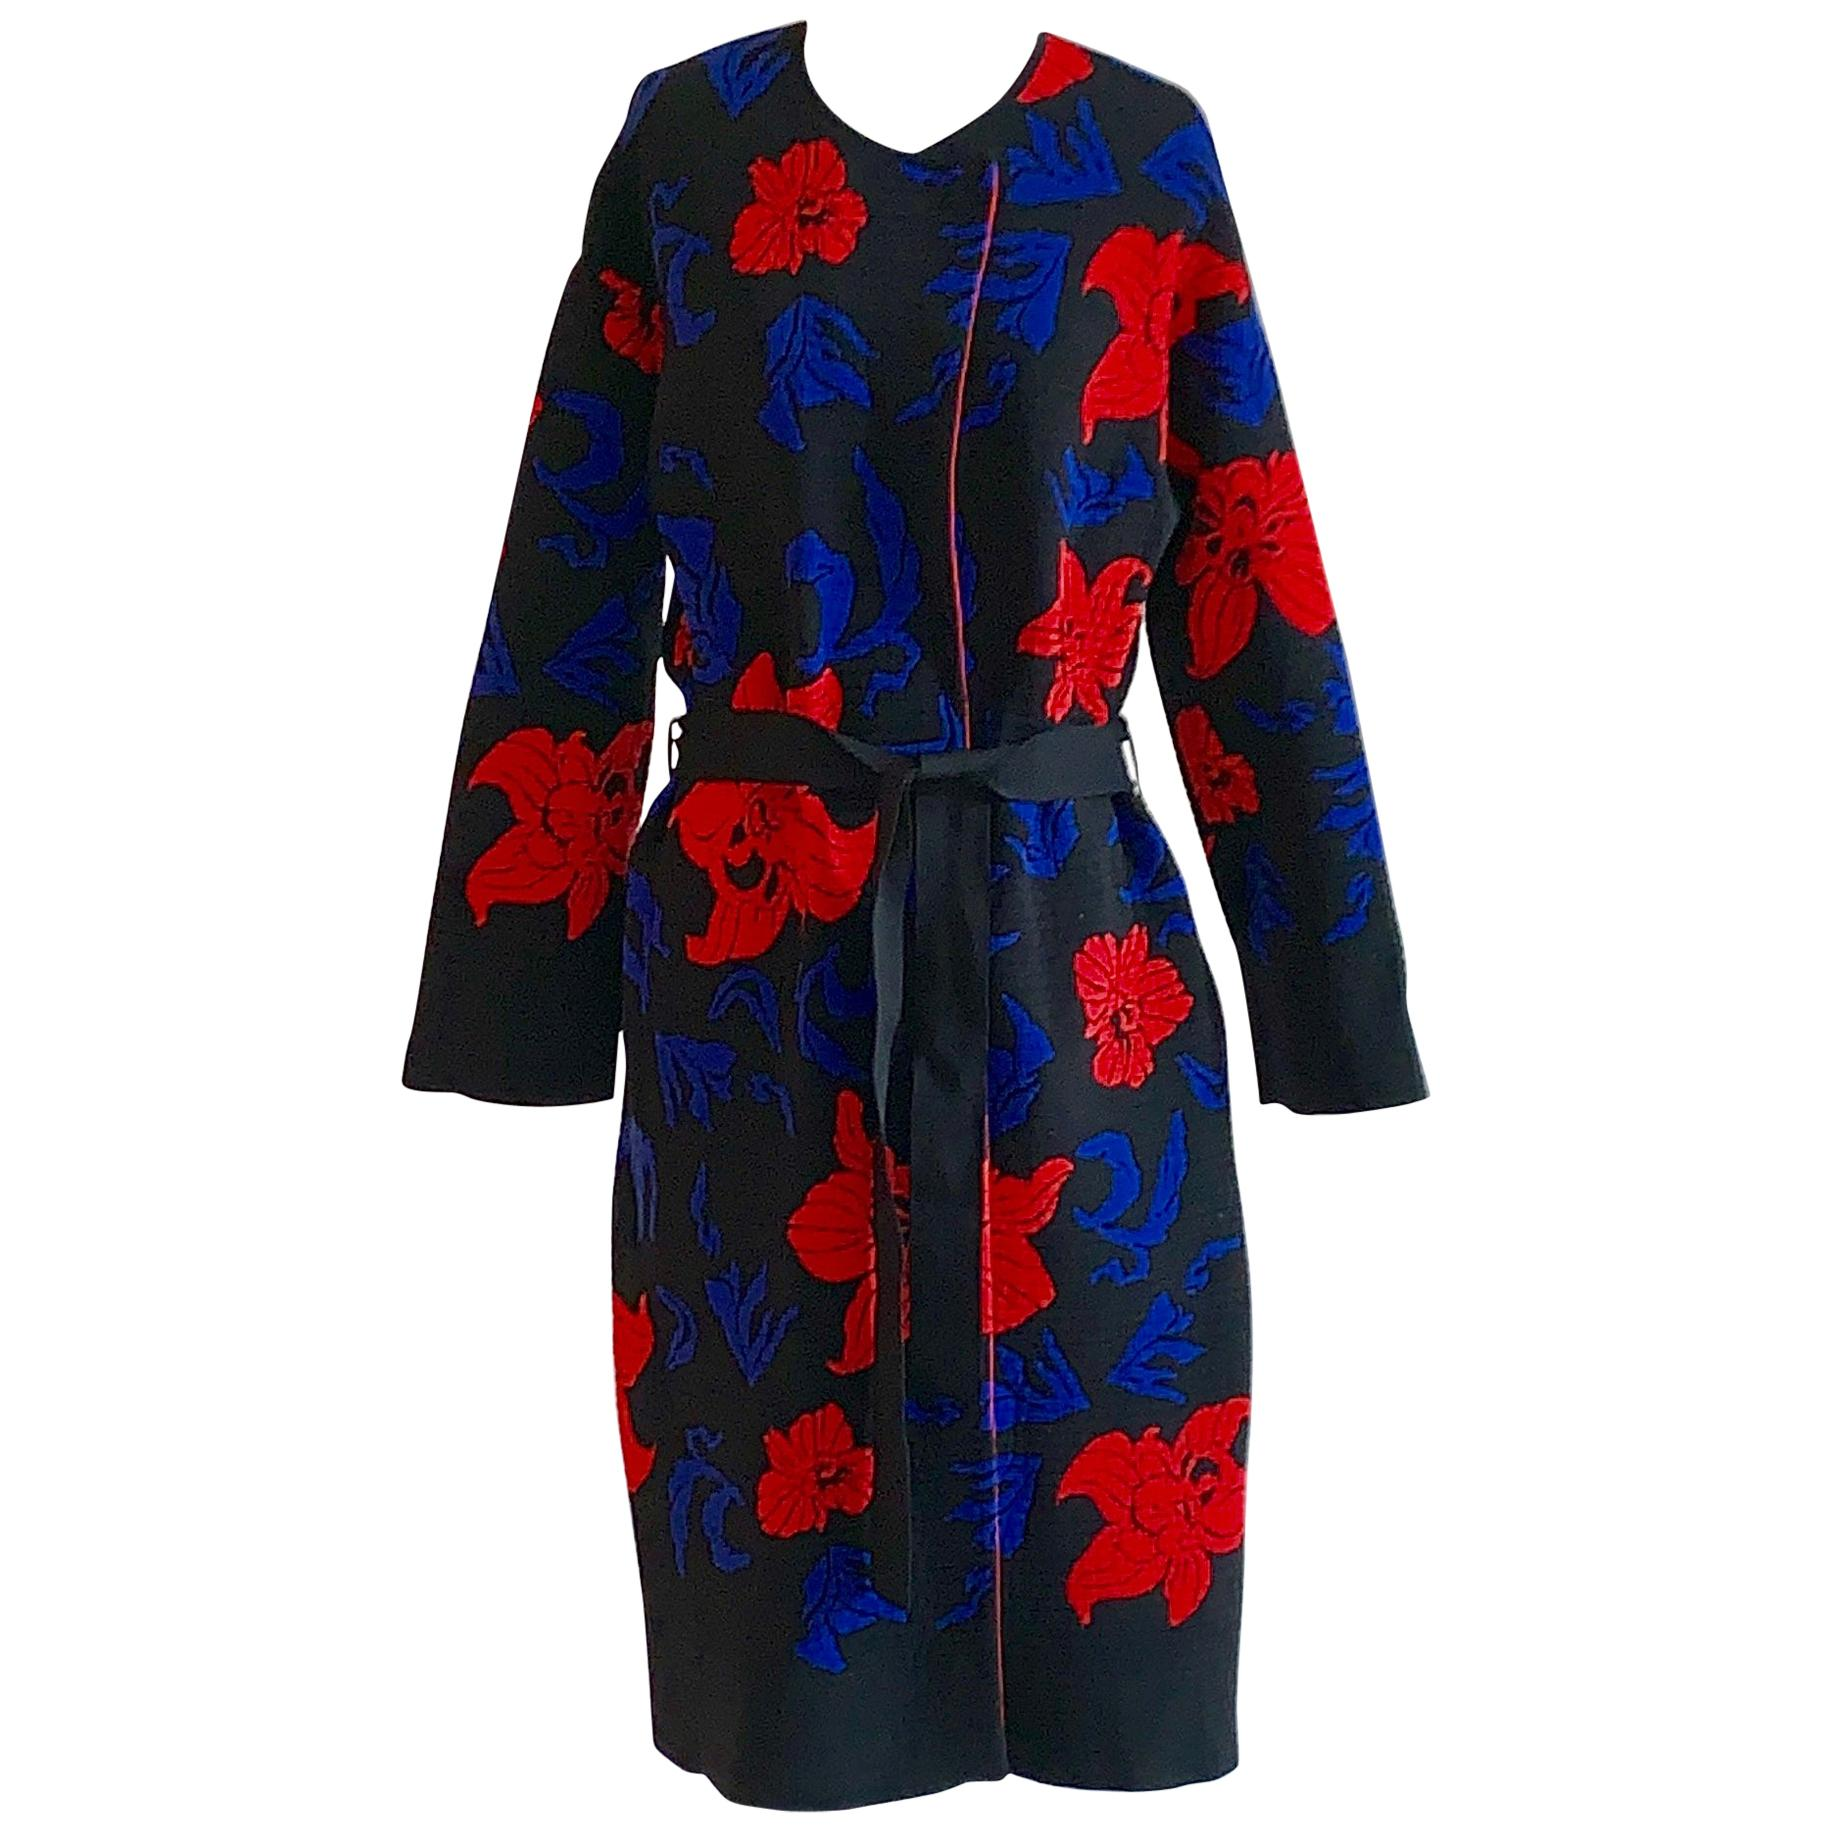 Emilio Pucci Floral Rib Knit Sweater Coat in Black, Blue and Red